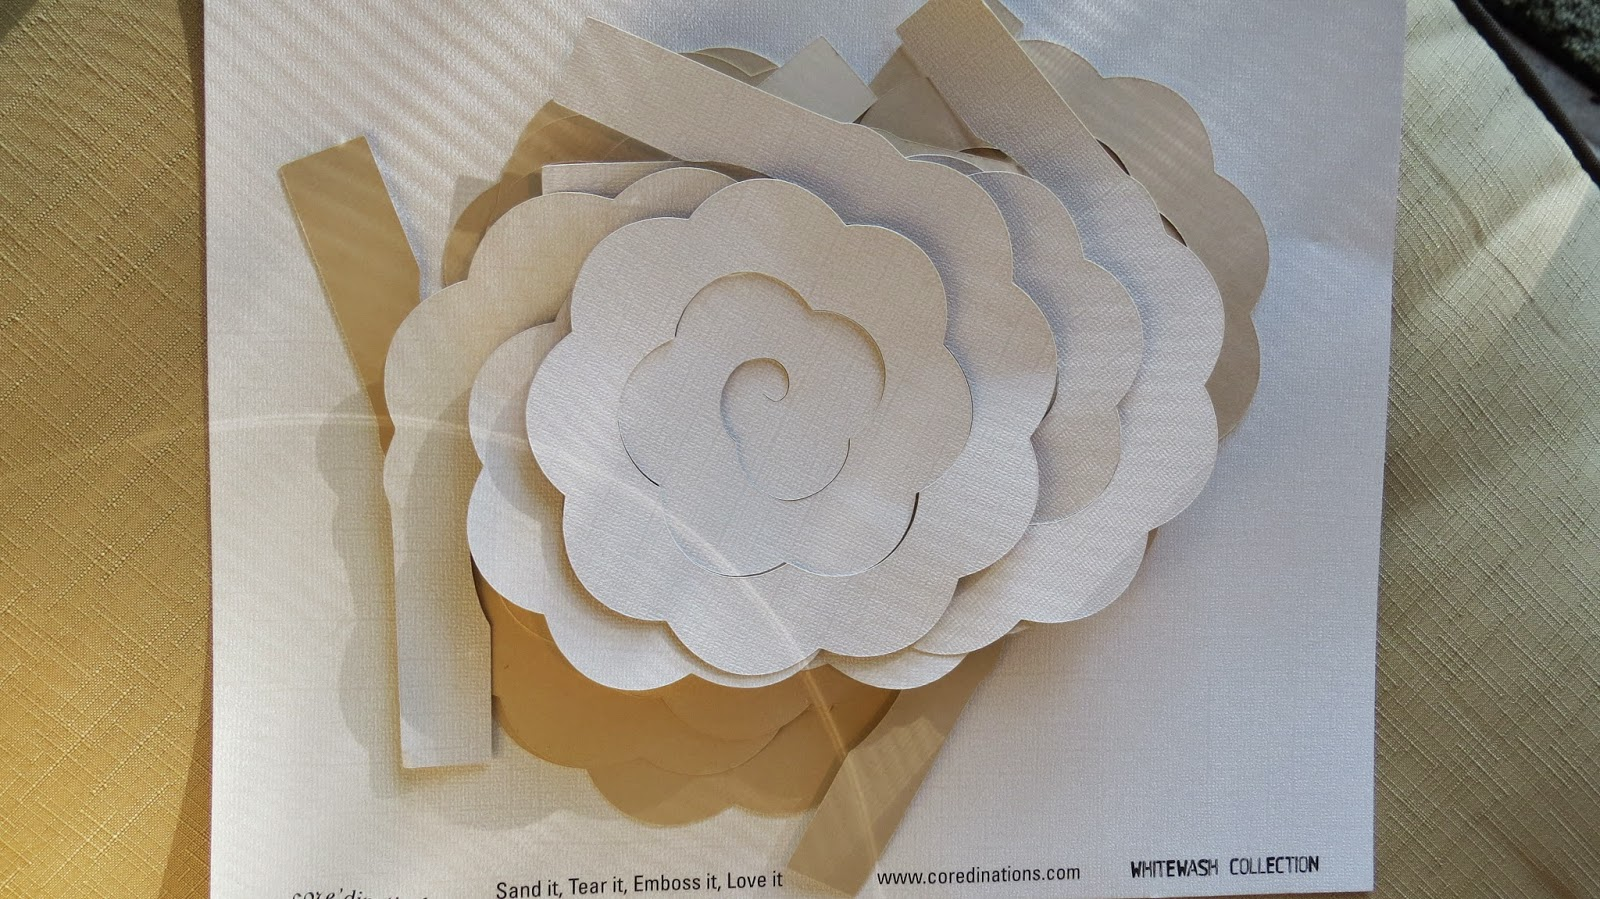 Coredinations, Whitewash, Texture of wood rose made of paper